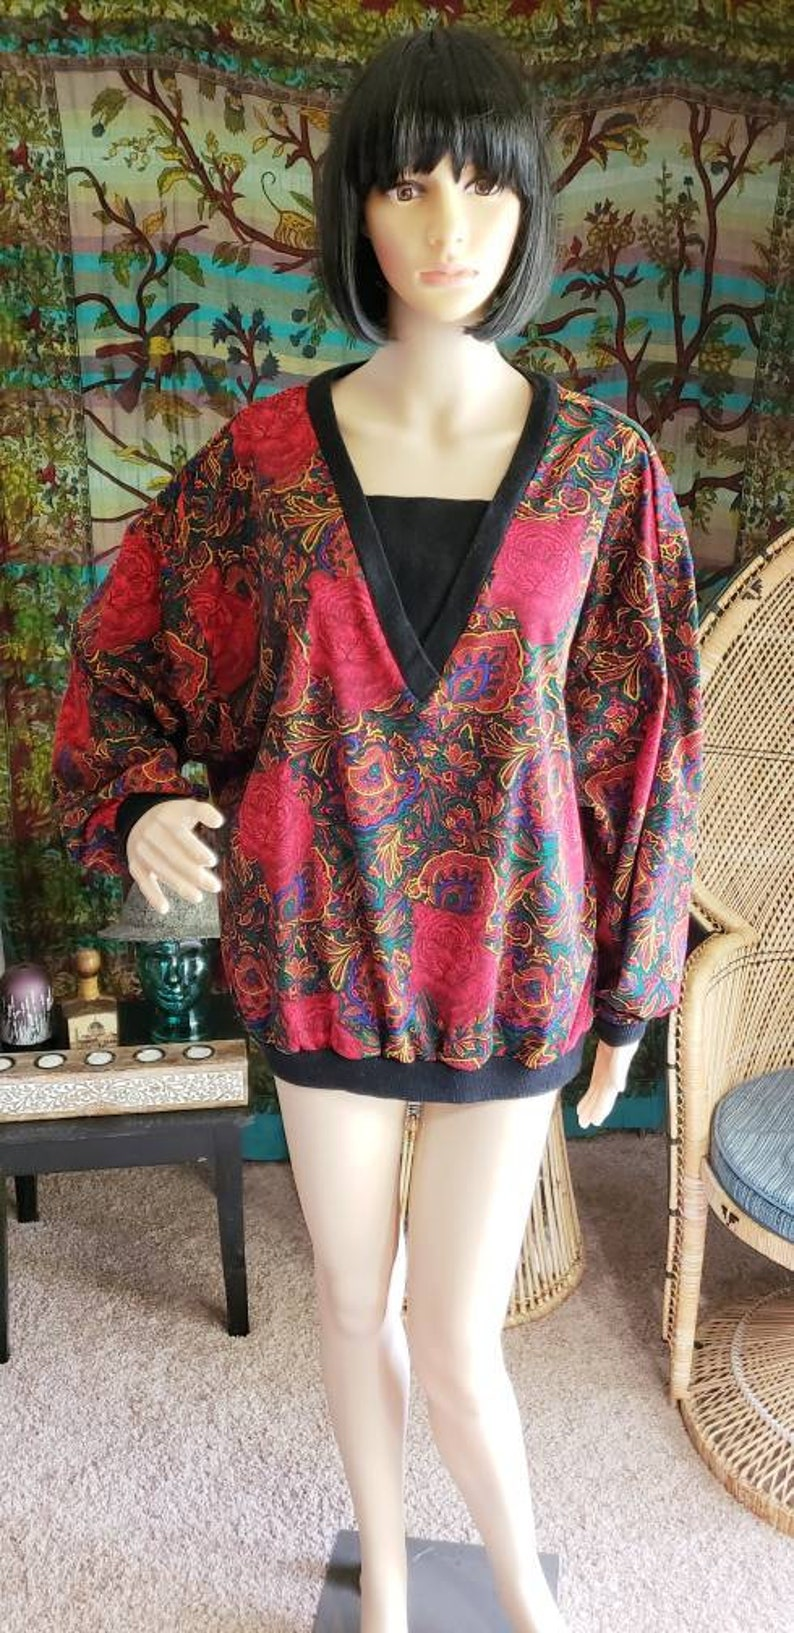 Wild Cat Shirt Women/'s Tiger Shirt 80s Tiger Jungle Top by Top Notch 80s Tiger Top Red Tiger Vintage Tiger Blouse Top Notch Top LG